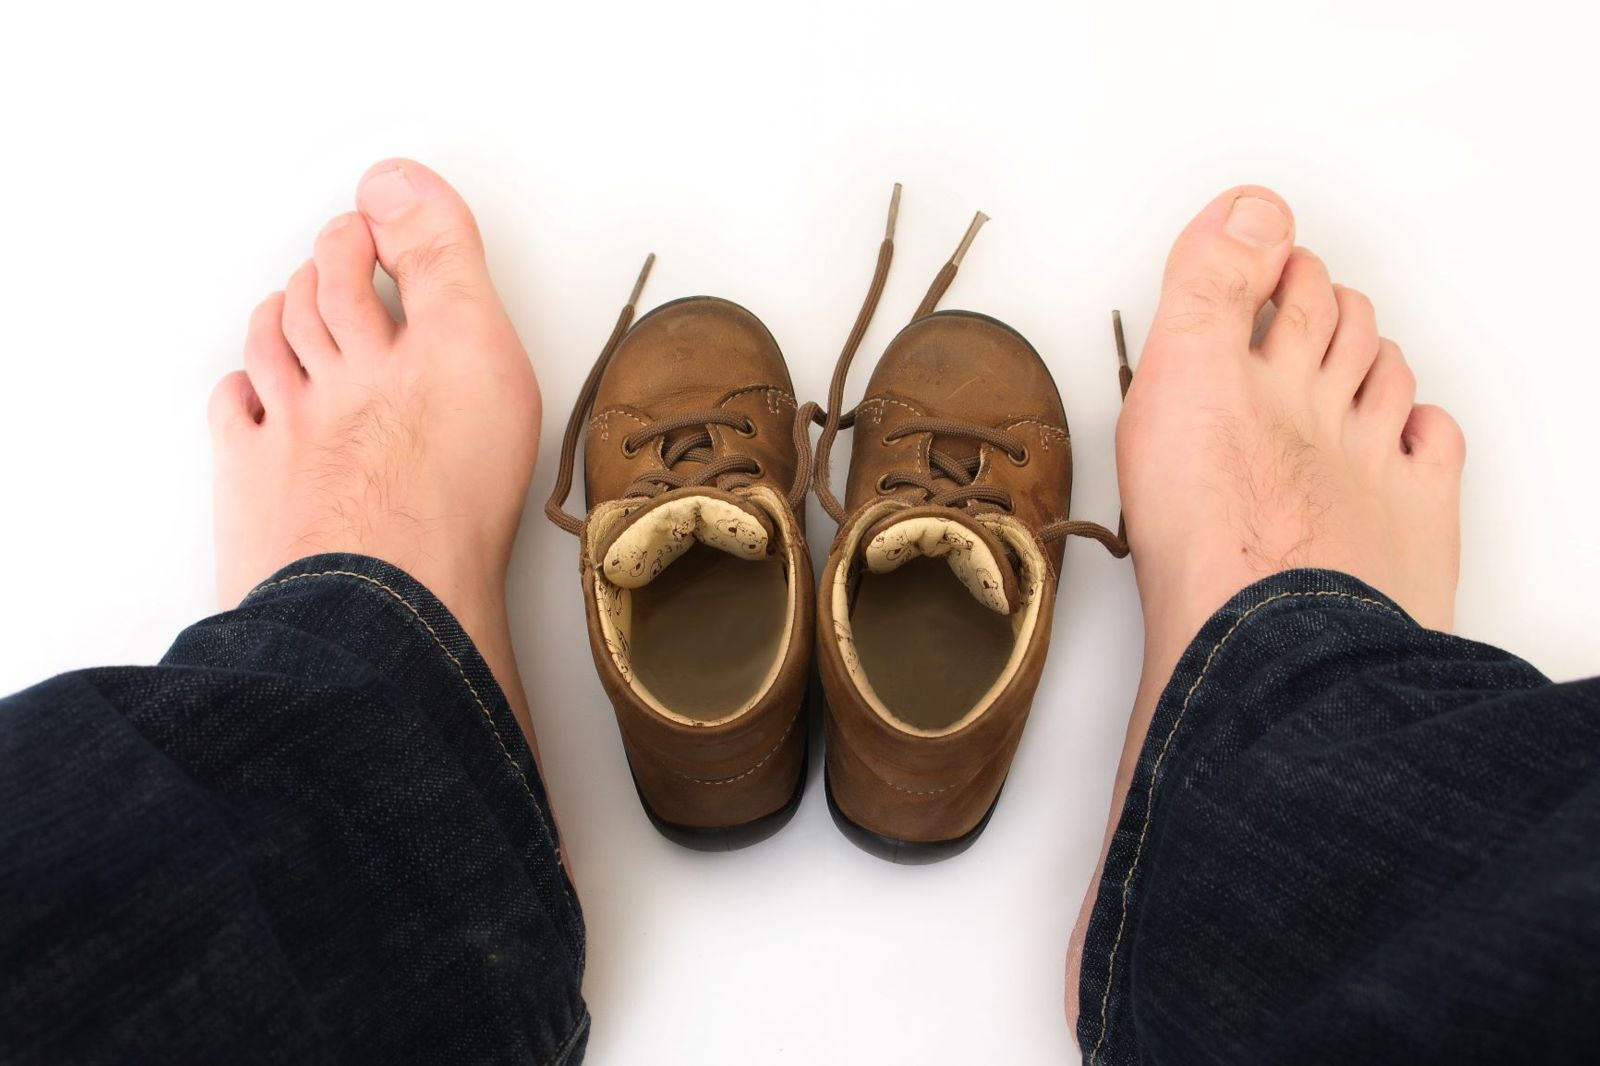 Sometimes, it's obvious your shoes don't Fit. Otherwise, you need some helpful guidelines to determine your shoe fit!